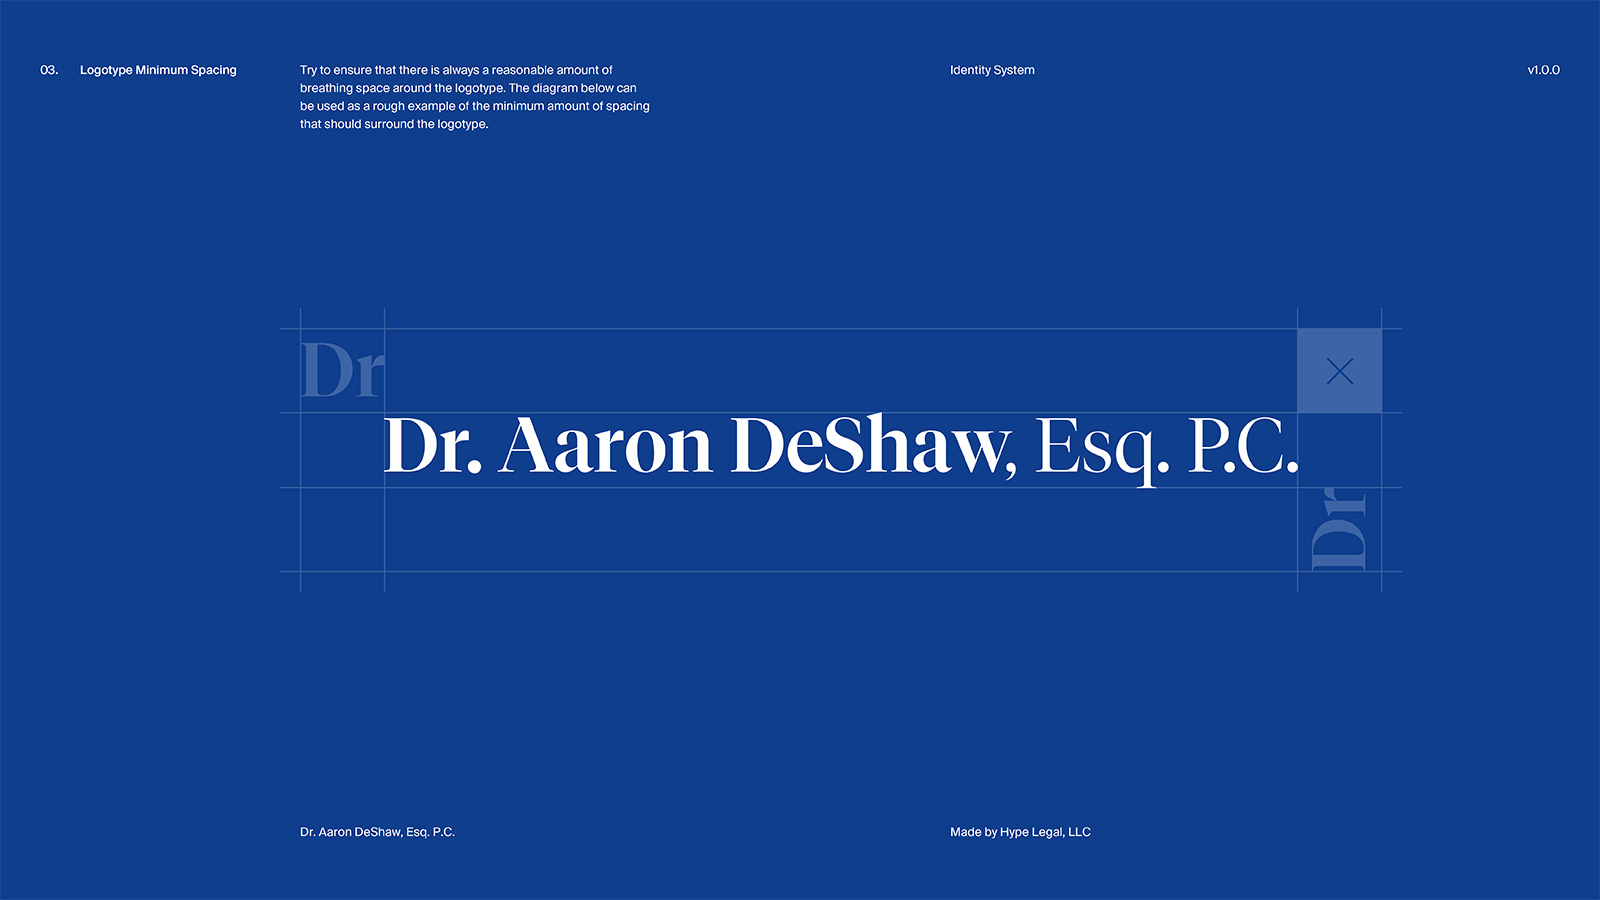 Identity System for Dr. Aaron DeShaw